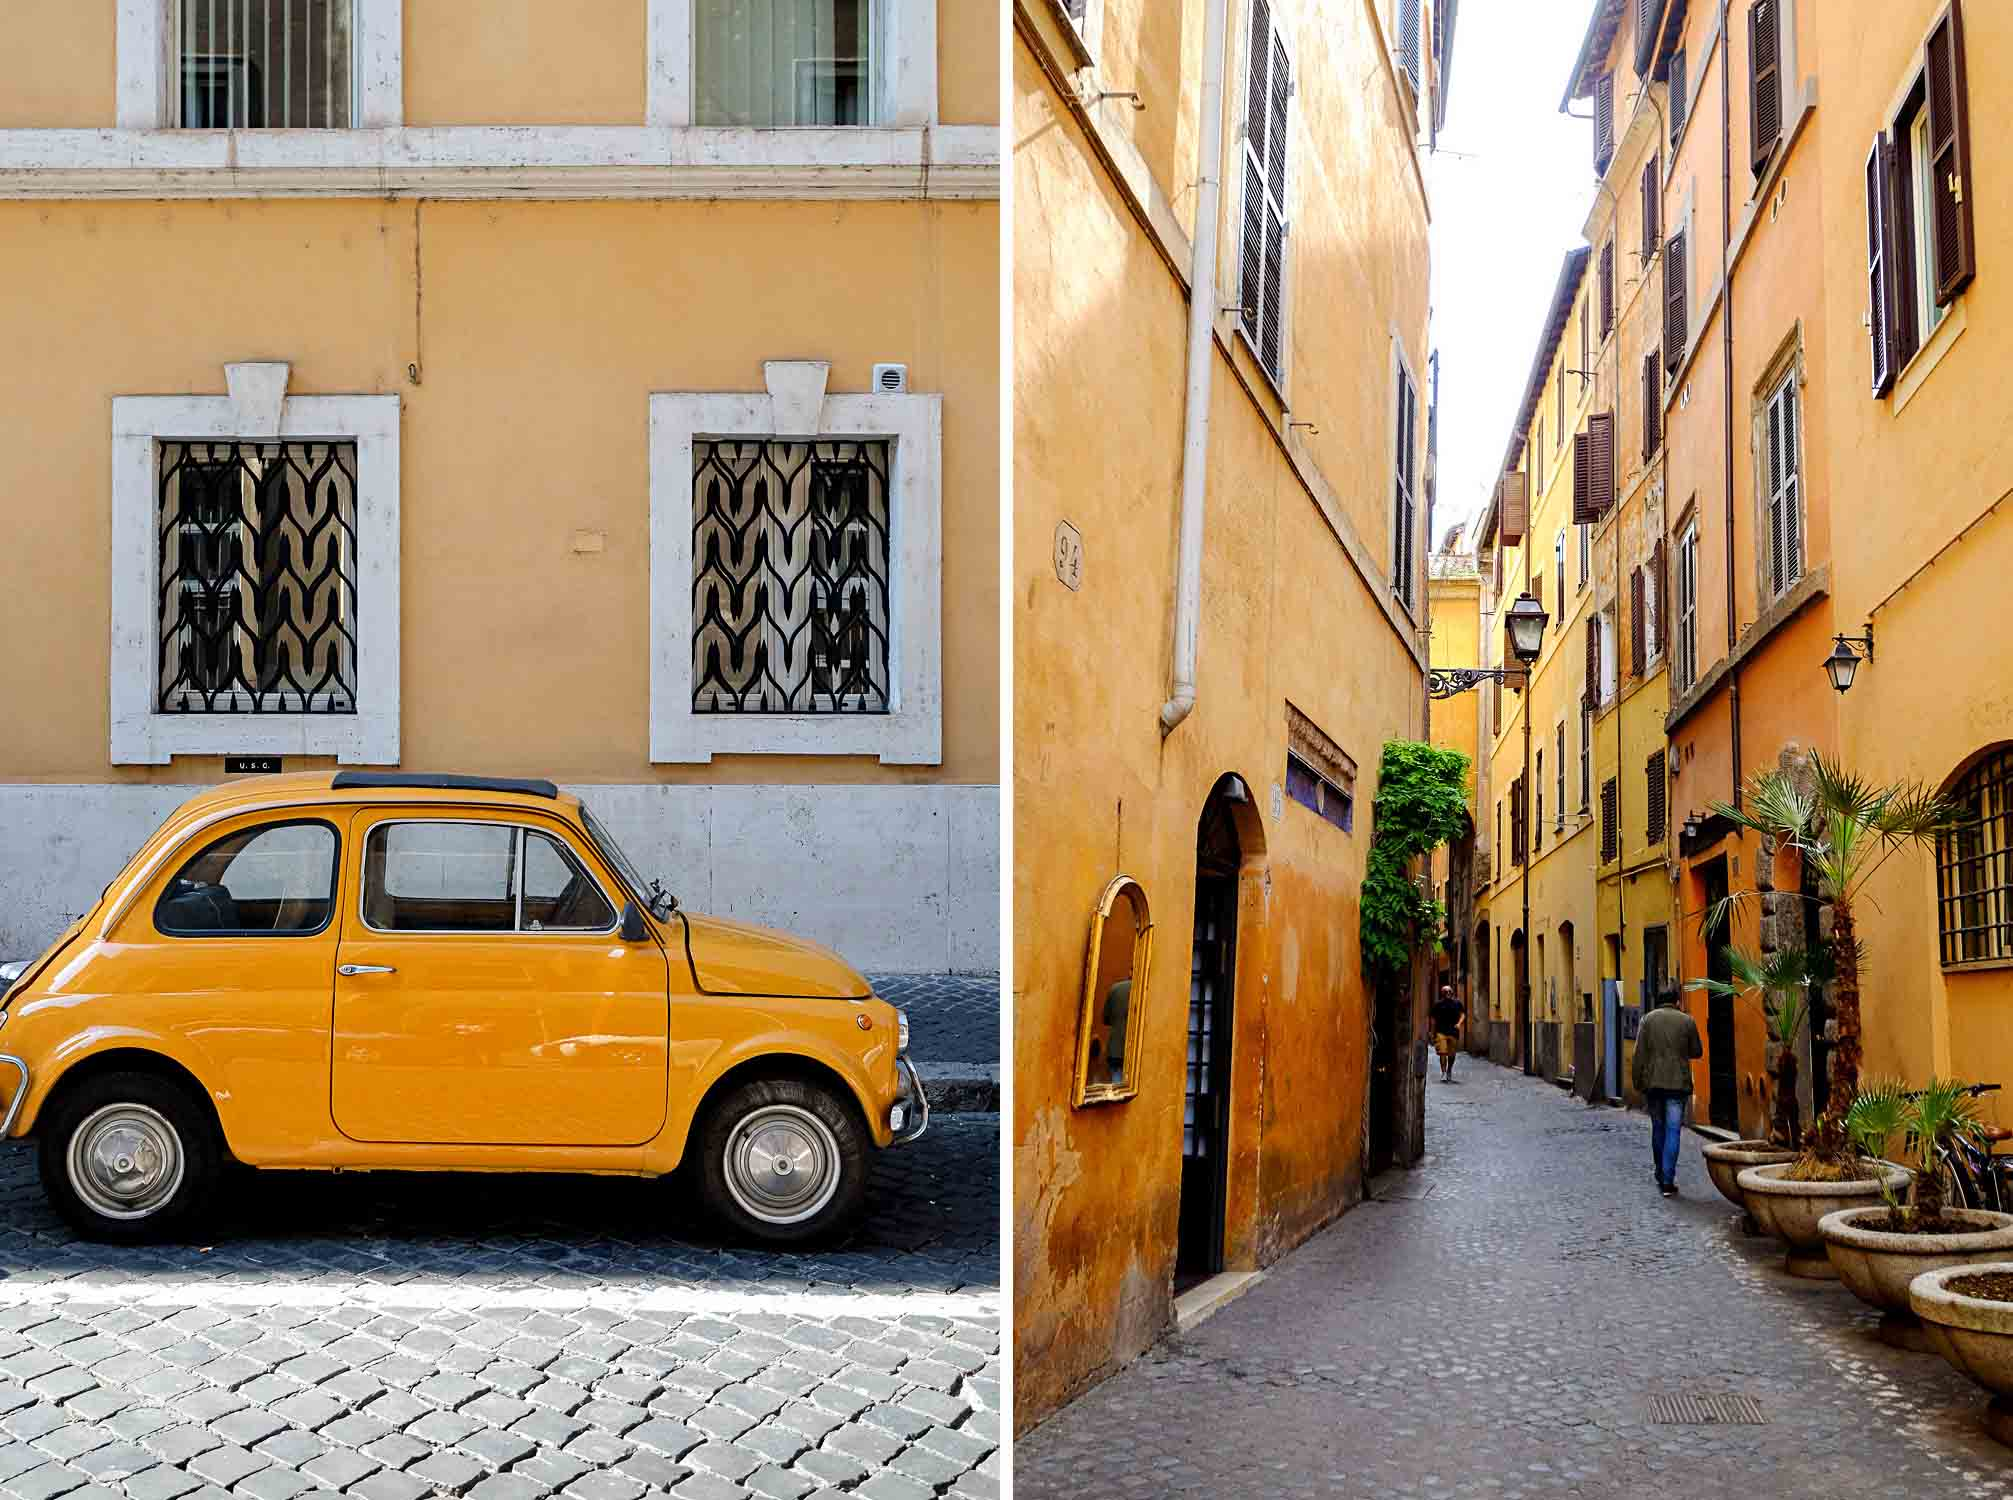 Walking through the old neighbourhoods of Rome in Italy